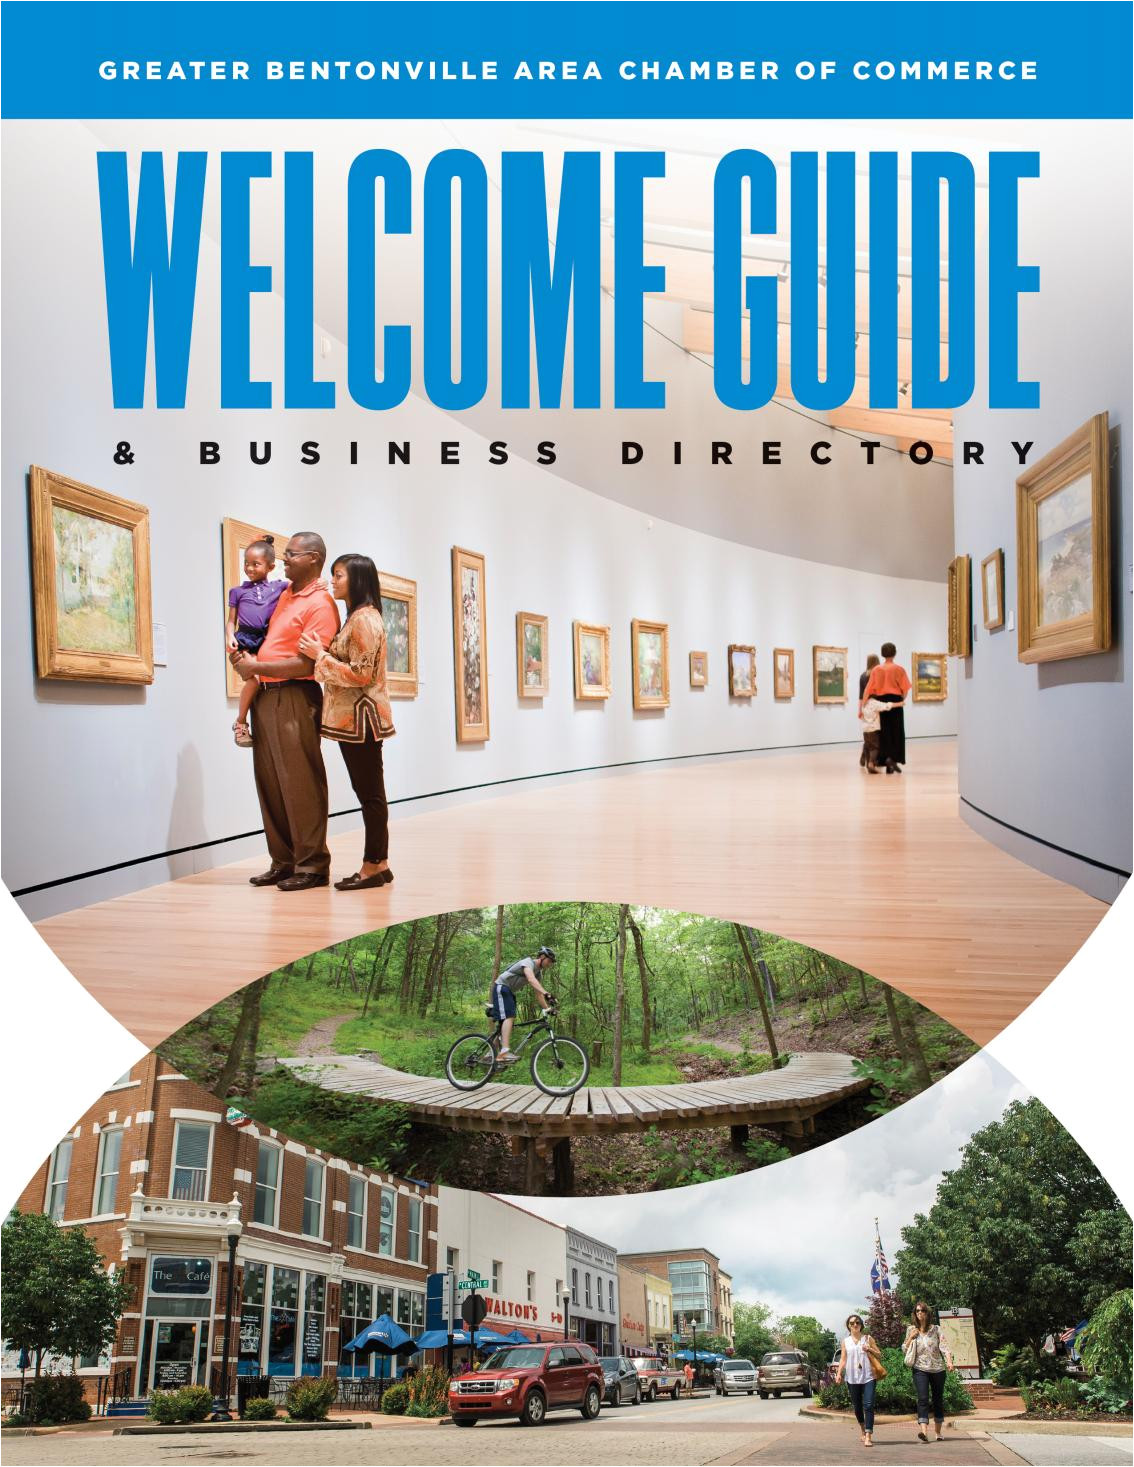 2017 greater bentonville area chamber of commerce welcome guide business directory by vantage point commmunications issuu